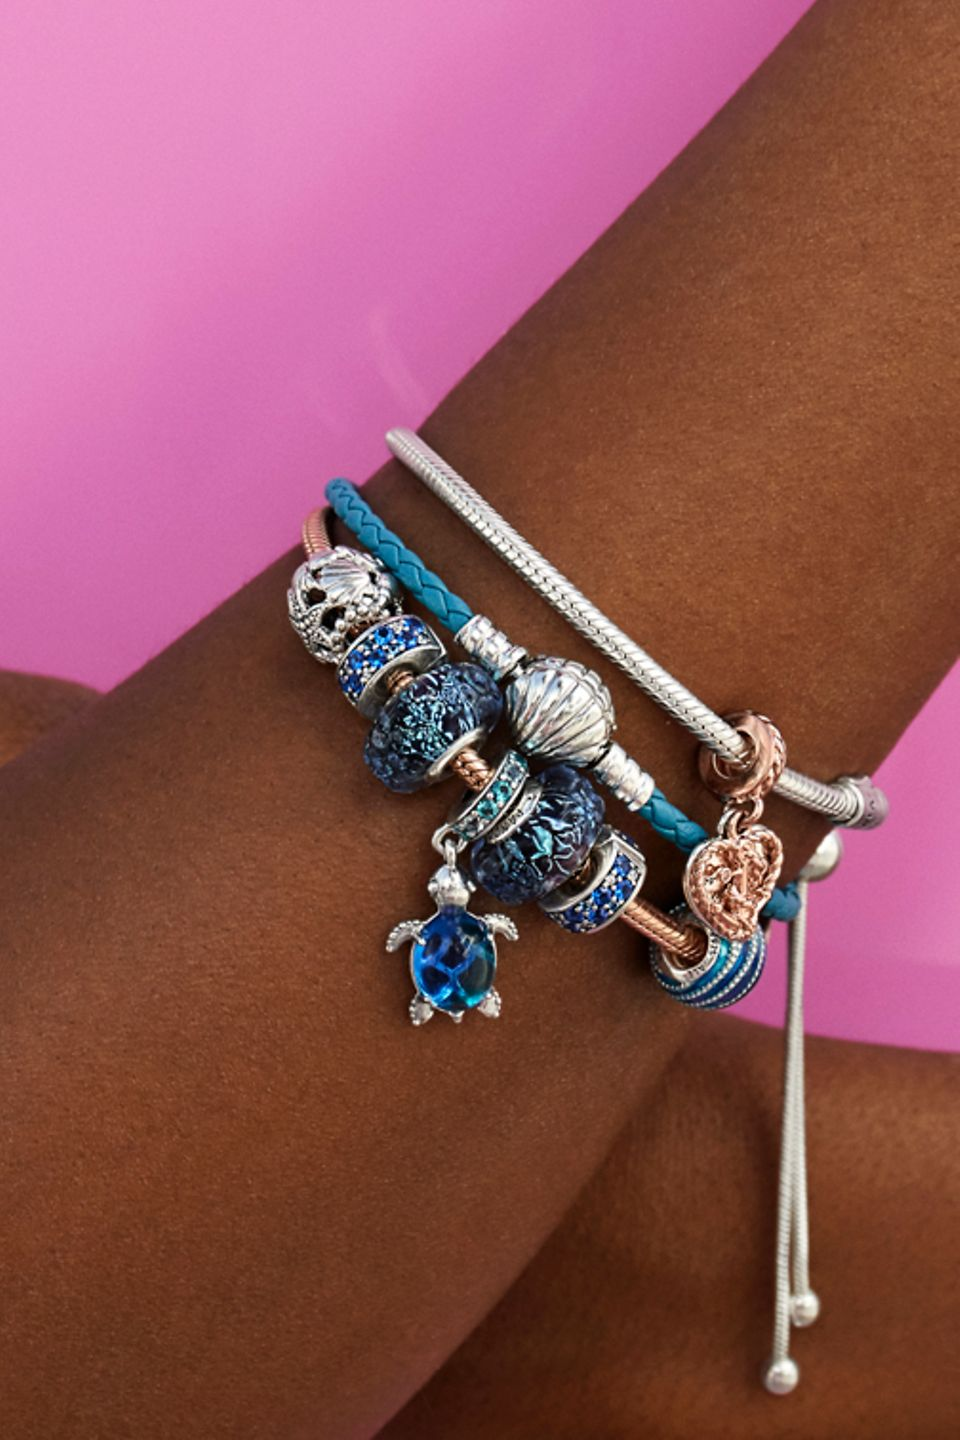 Add ocean charms to your blue leather bracelet.